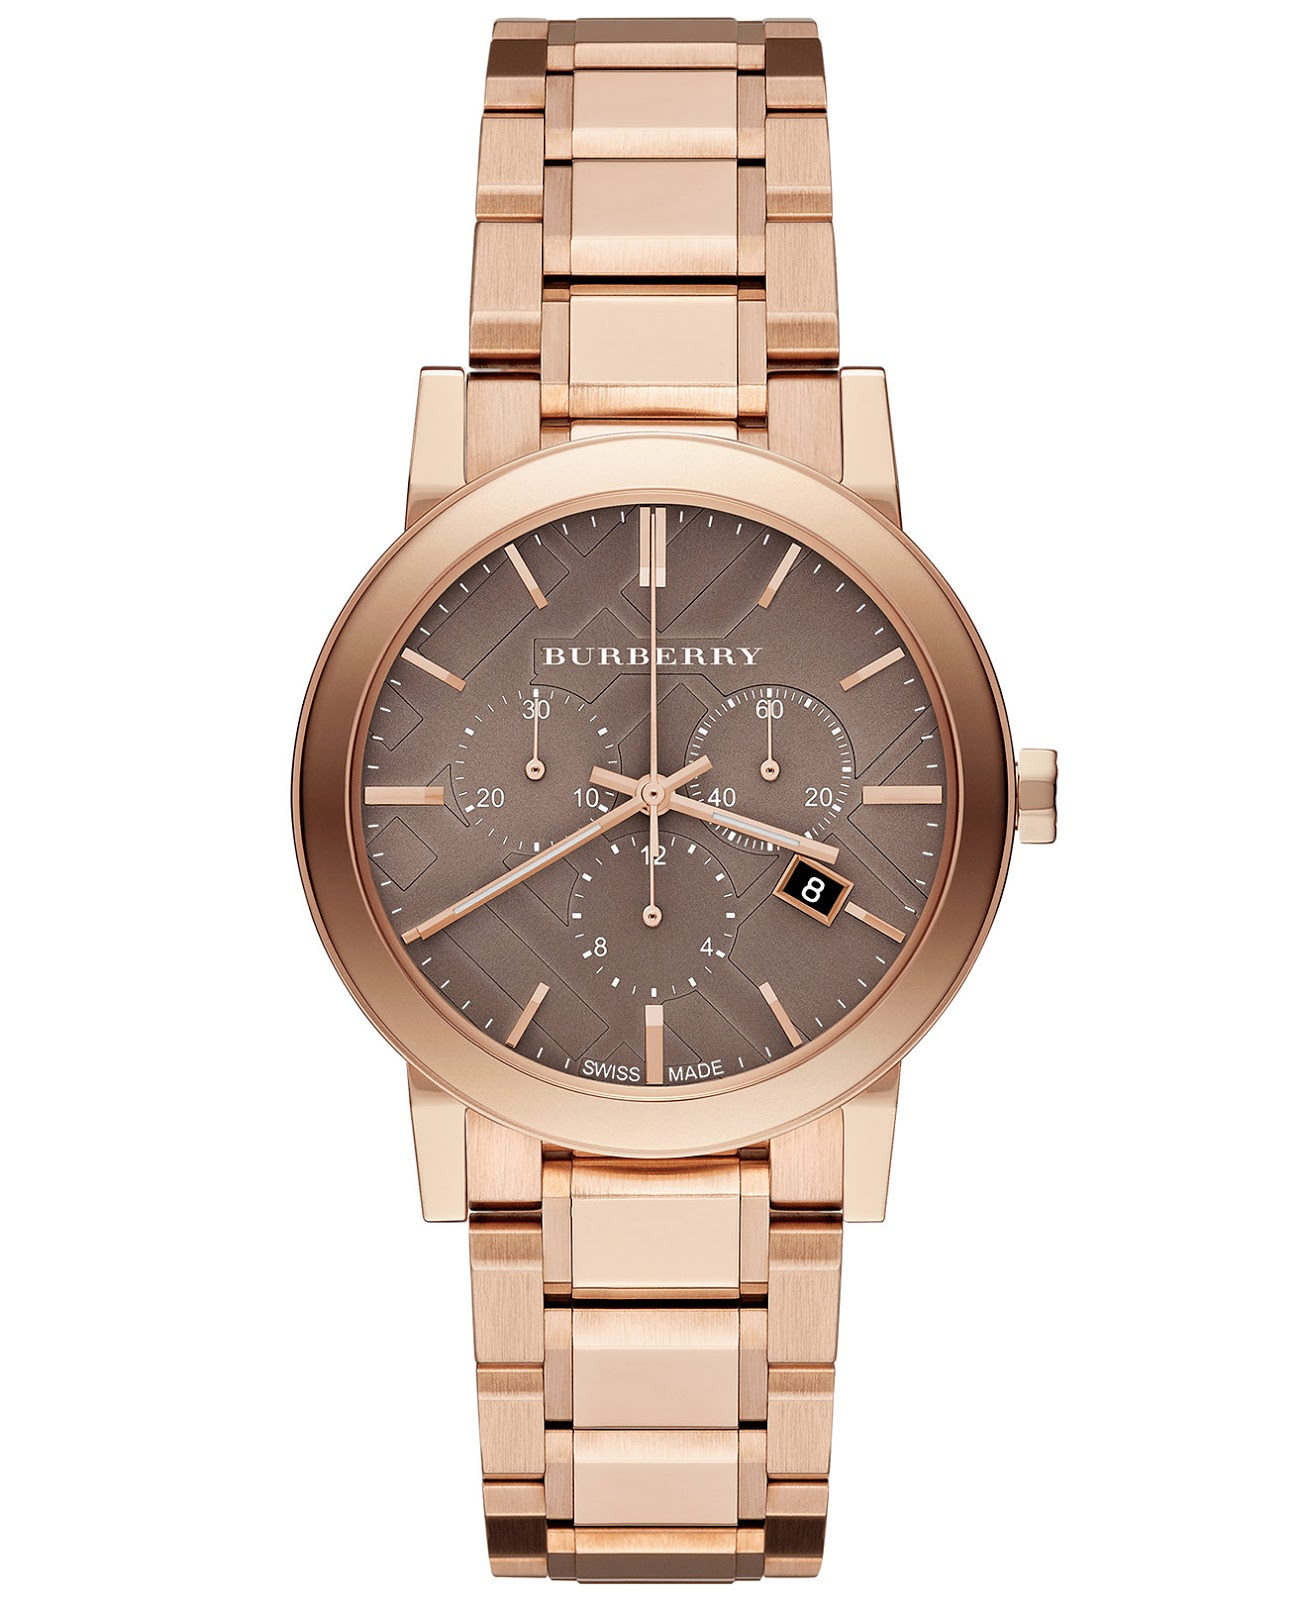 http://uk.burberry.com/the-city-bu9754-38mm-chronograph-p39169051